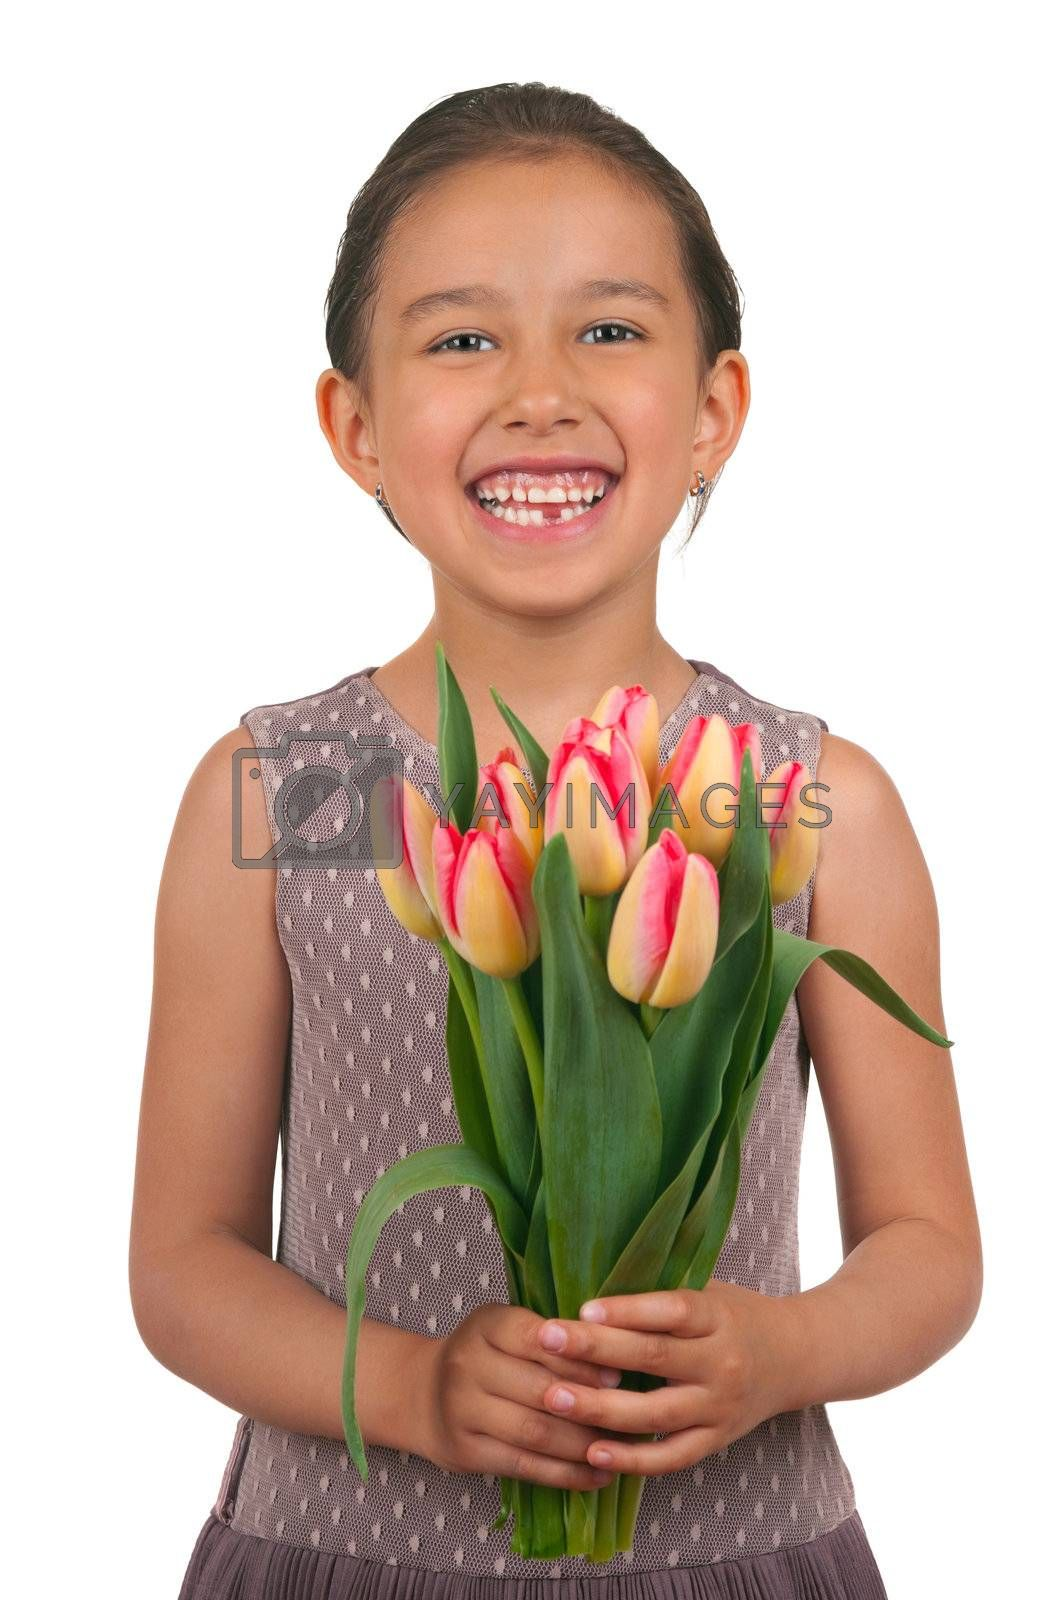 Beautiful little girl giving flowers for mothers day or birthday